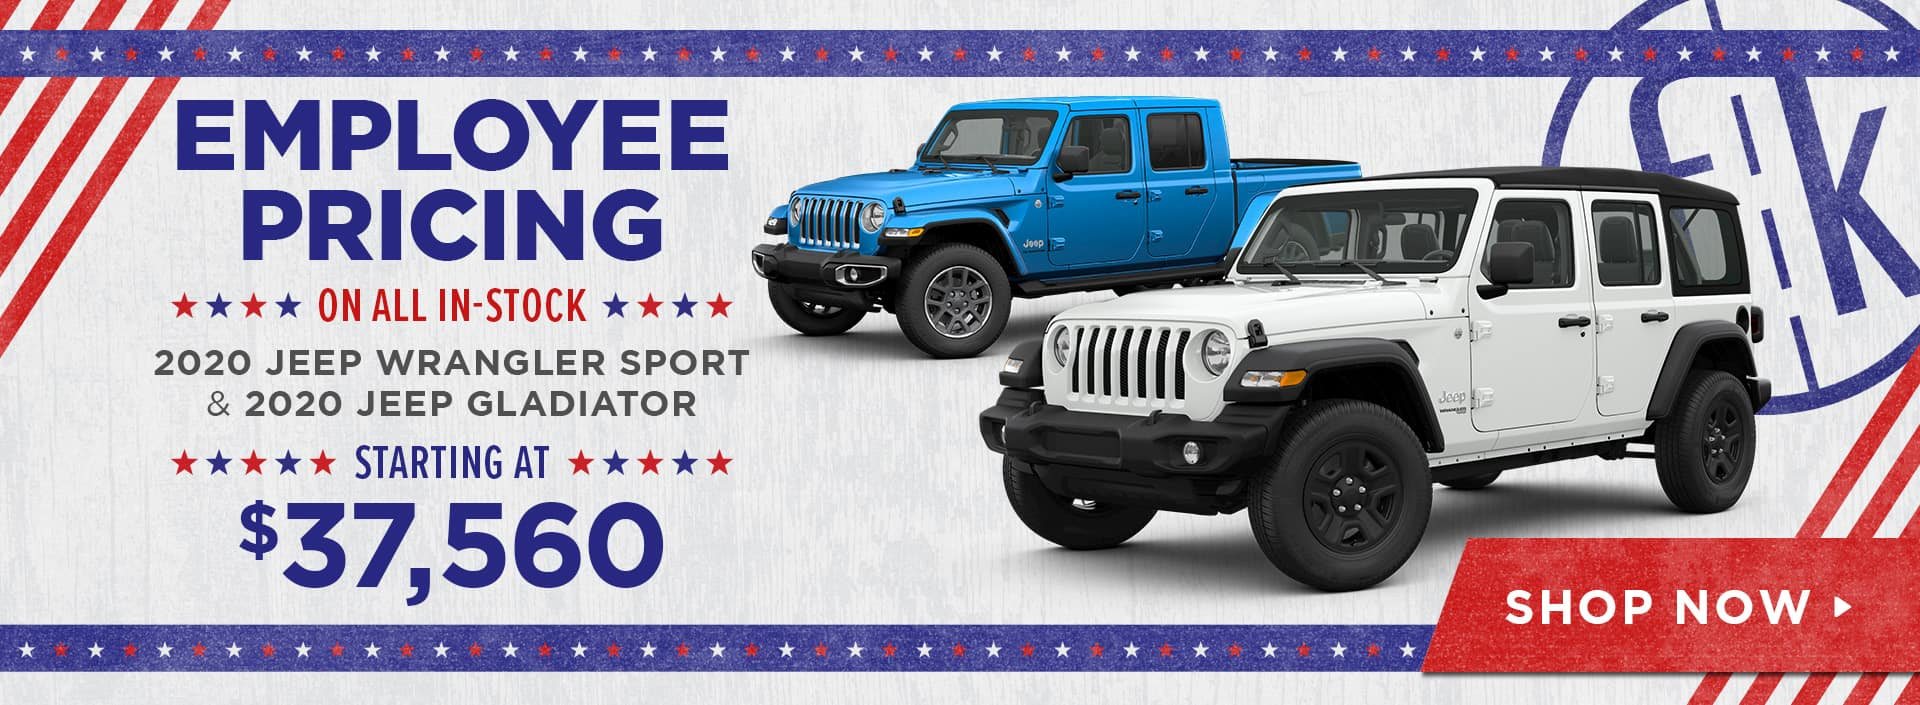 Employee Pricing on All In-Stock 2020 Jeep Wrangler Sport & 2020 Jeep Gladiator Starting at $37,560